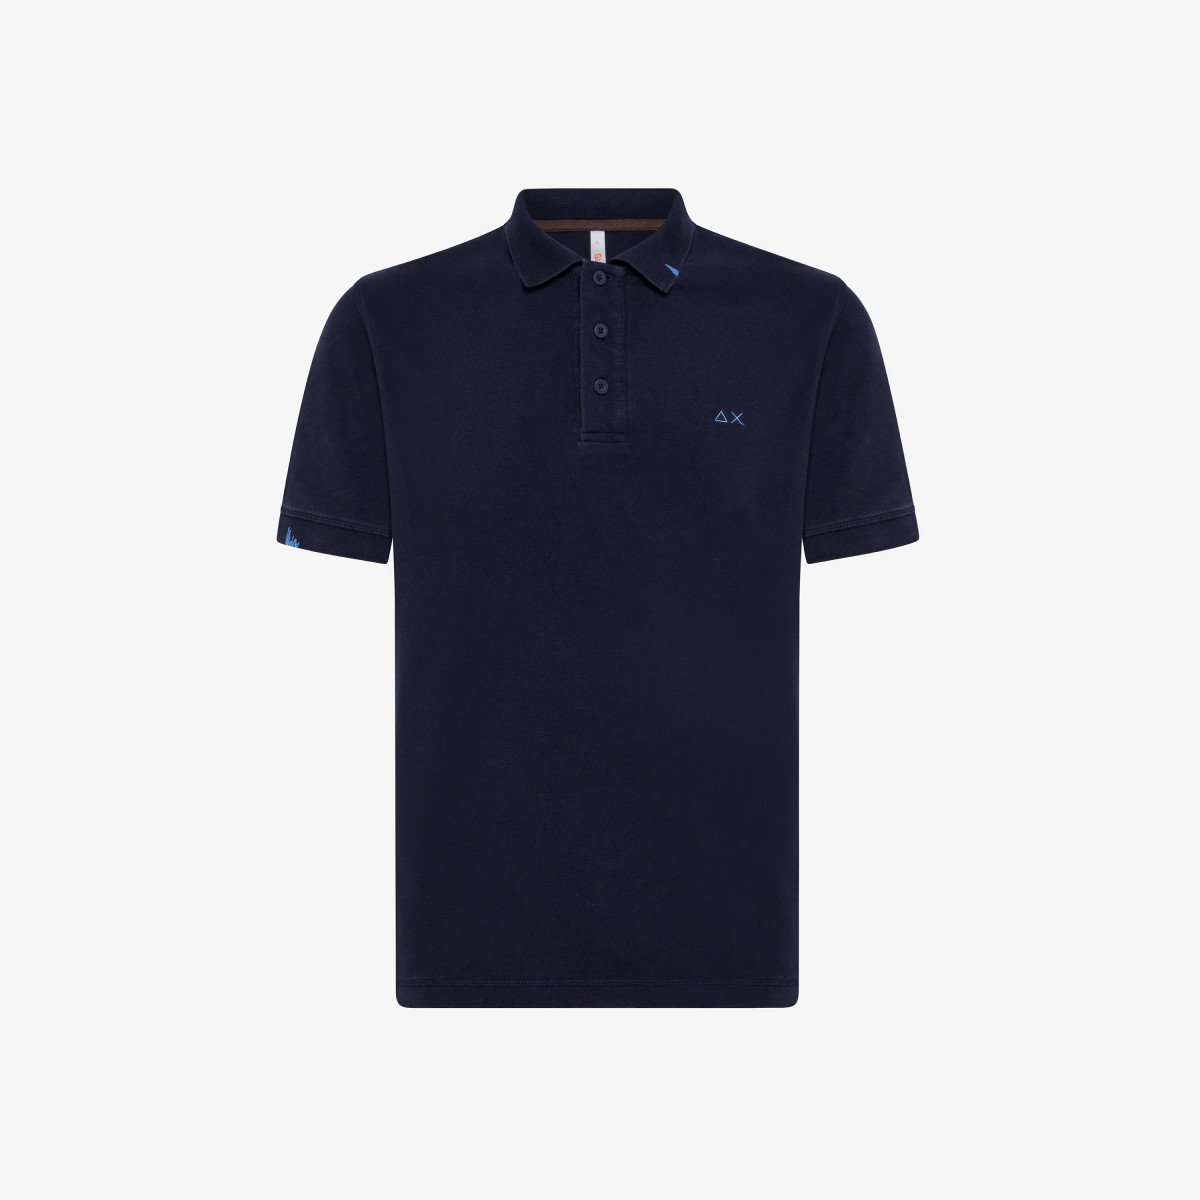 POLO VINTAGE CONTRAST STICHING S/S NAVY BLUE